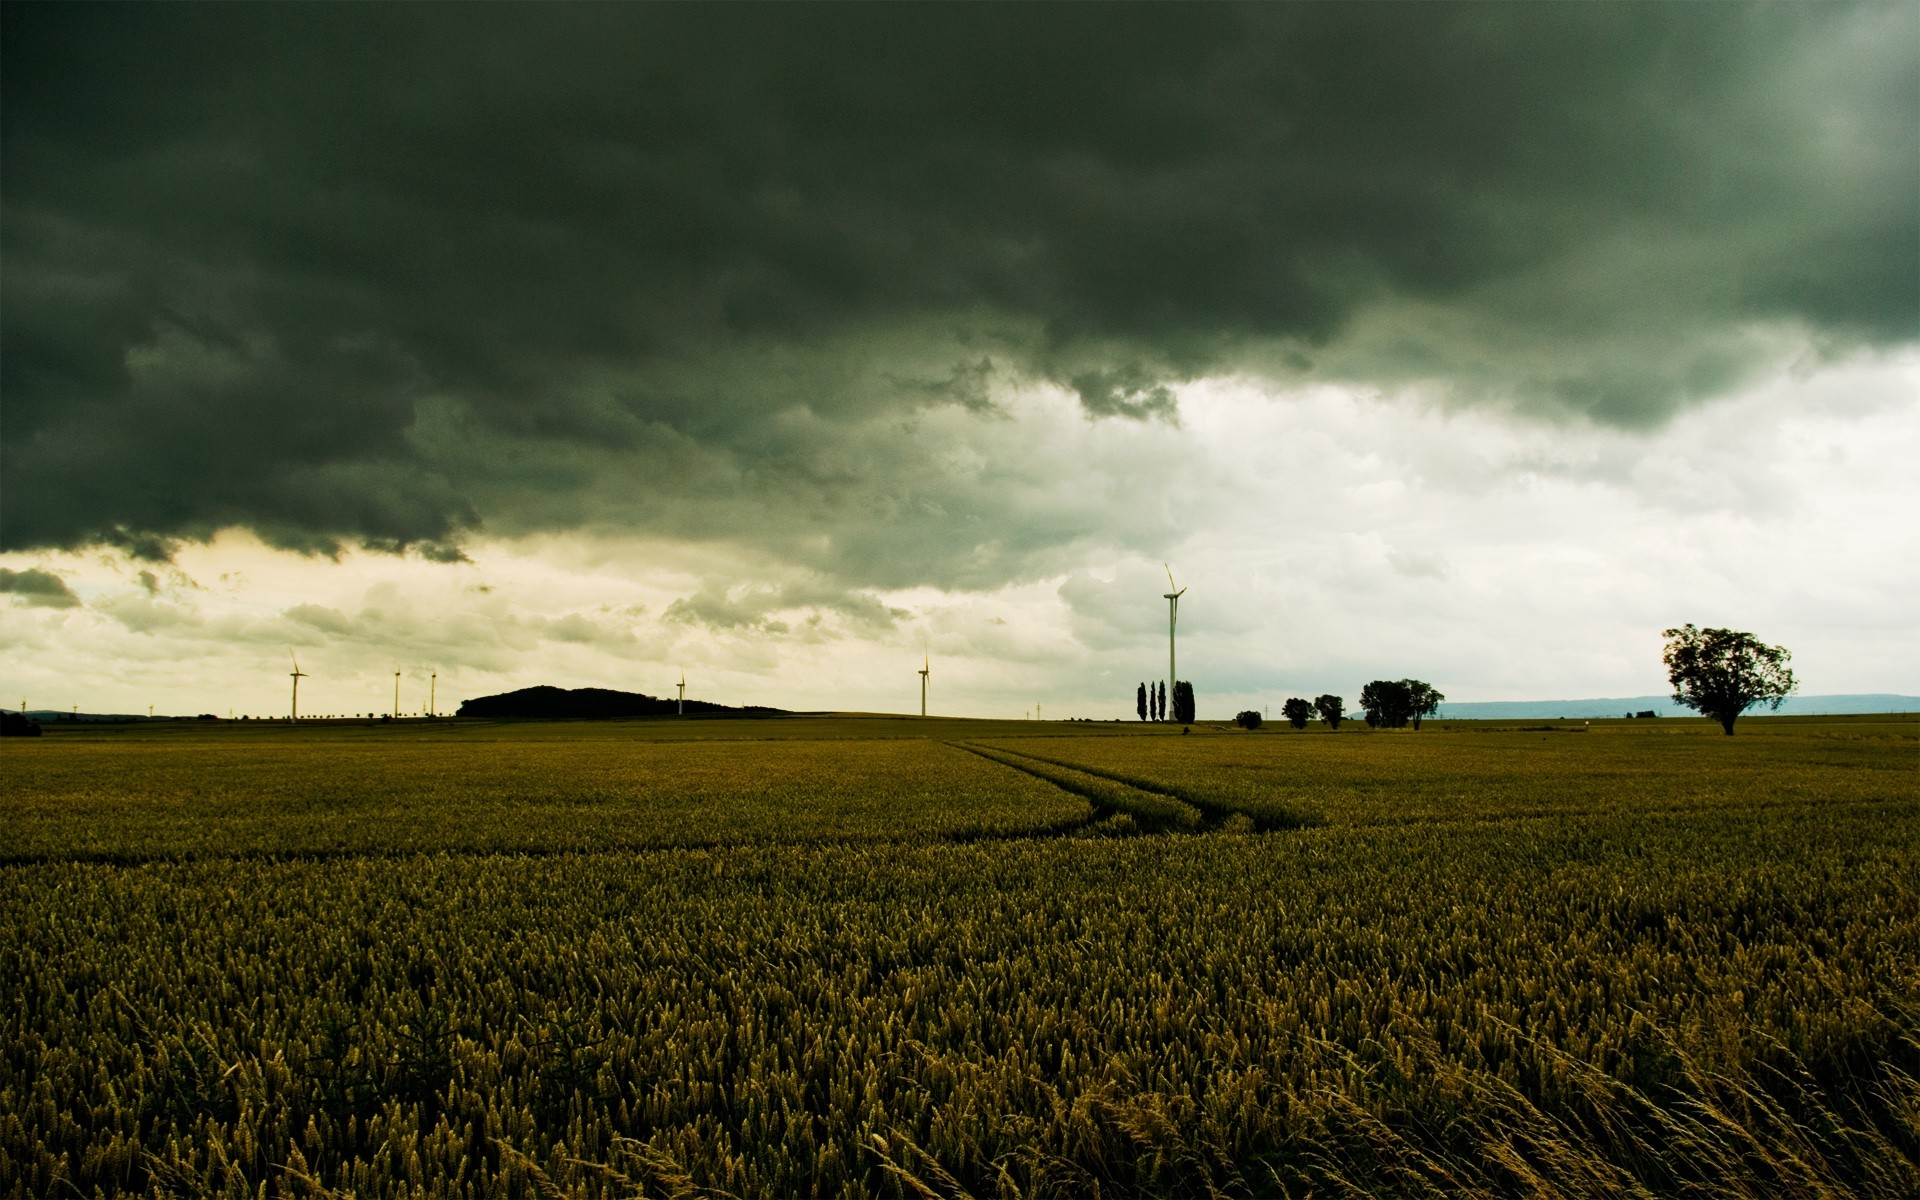 1920x1200 Gloomy Wheat Field Stormy Sky wallpapers and stock photos